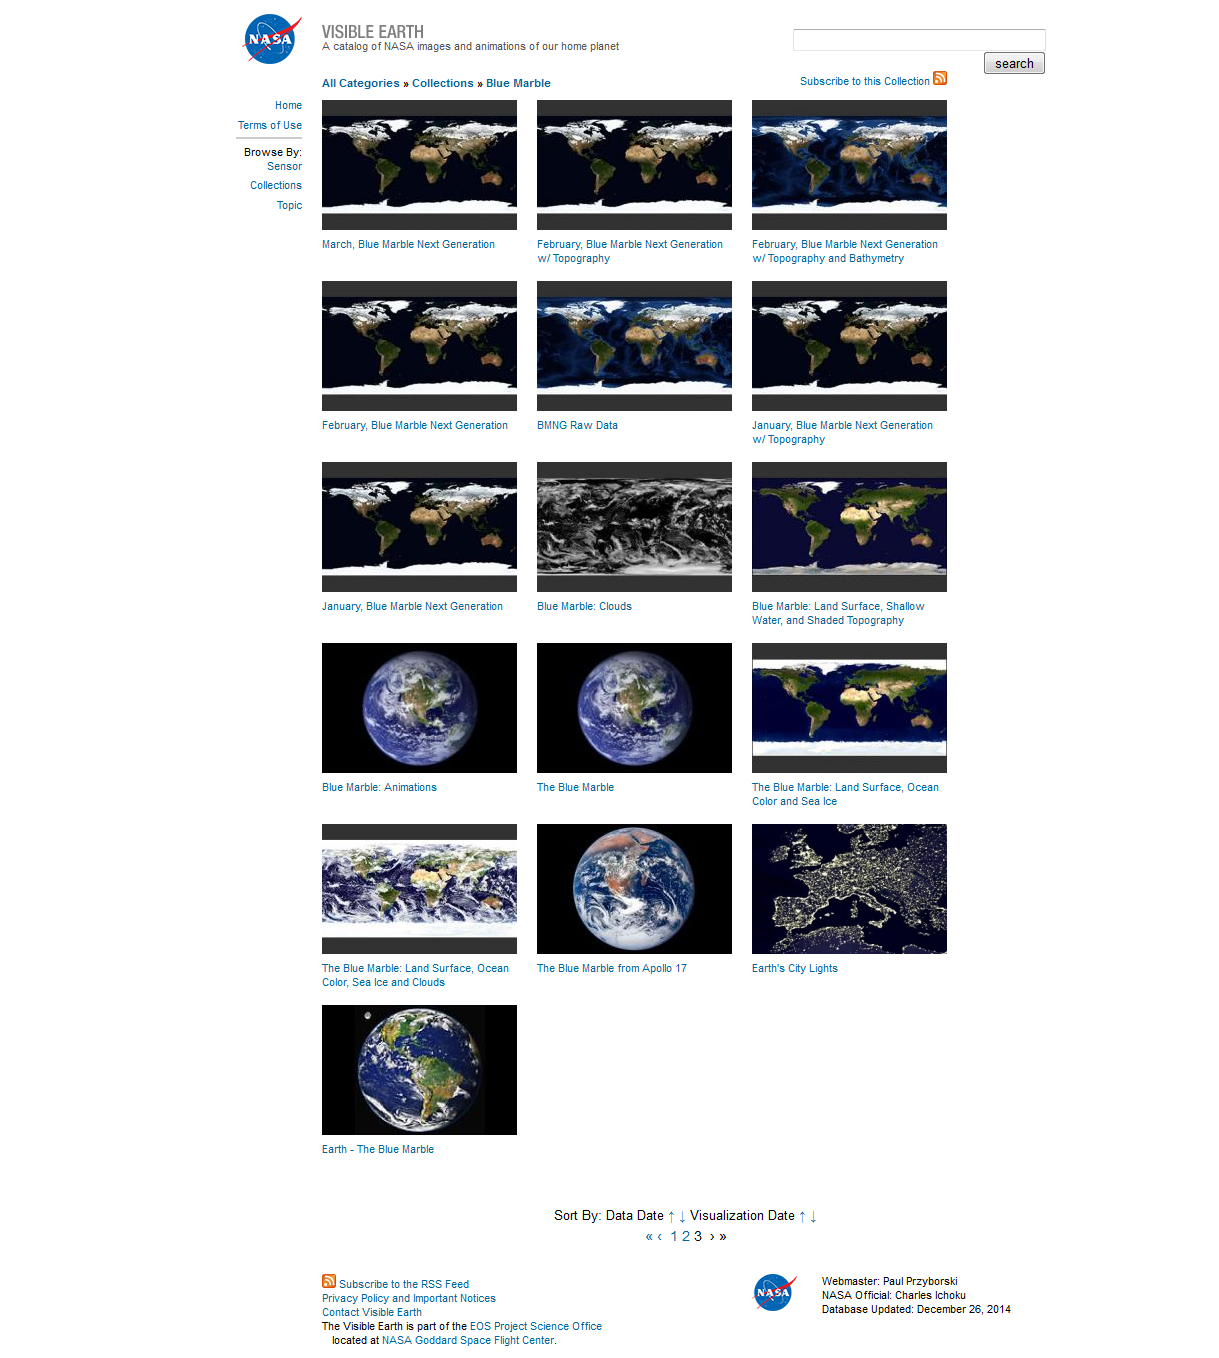 Blue Marble Collection Nasa Dec2014 3.png